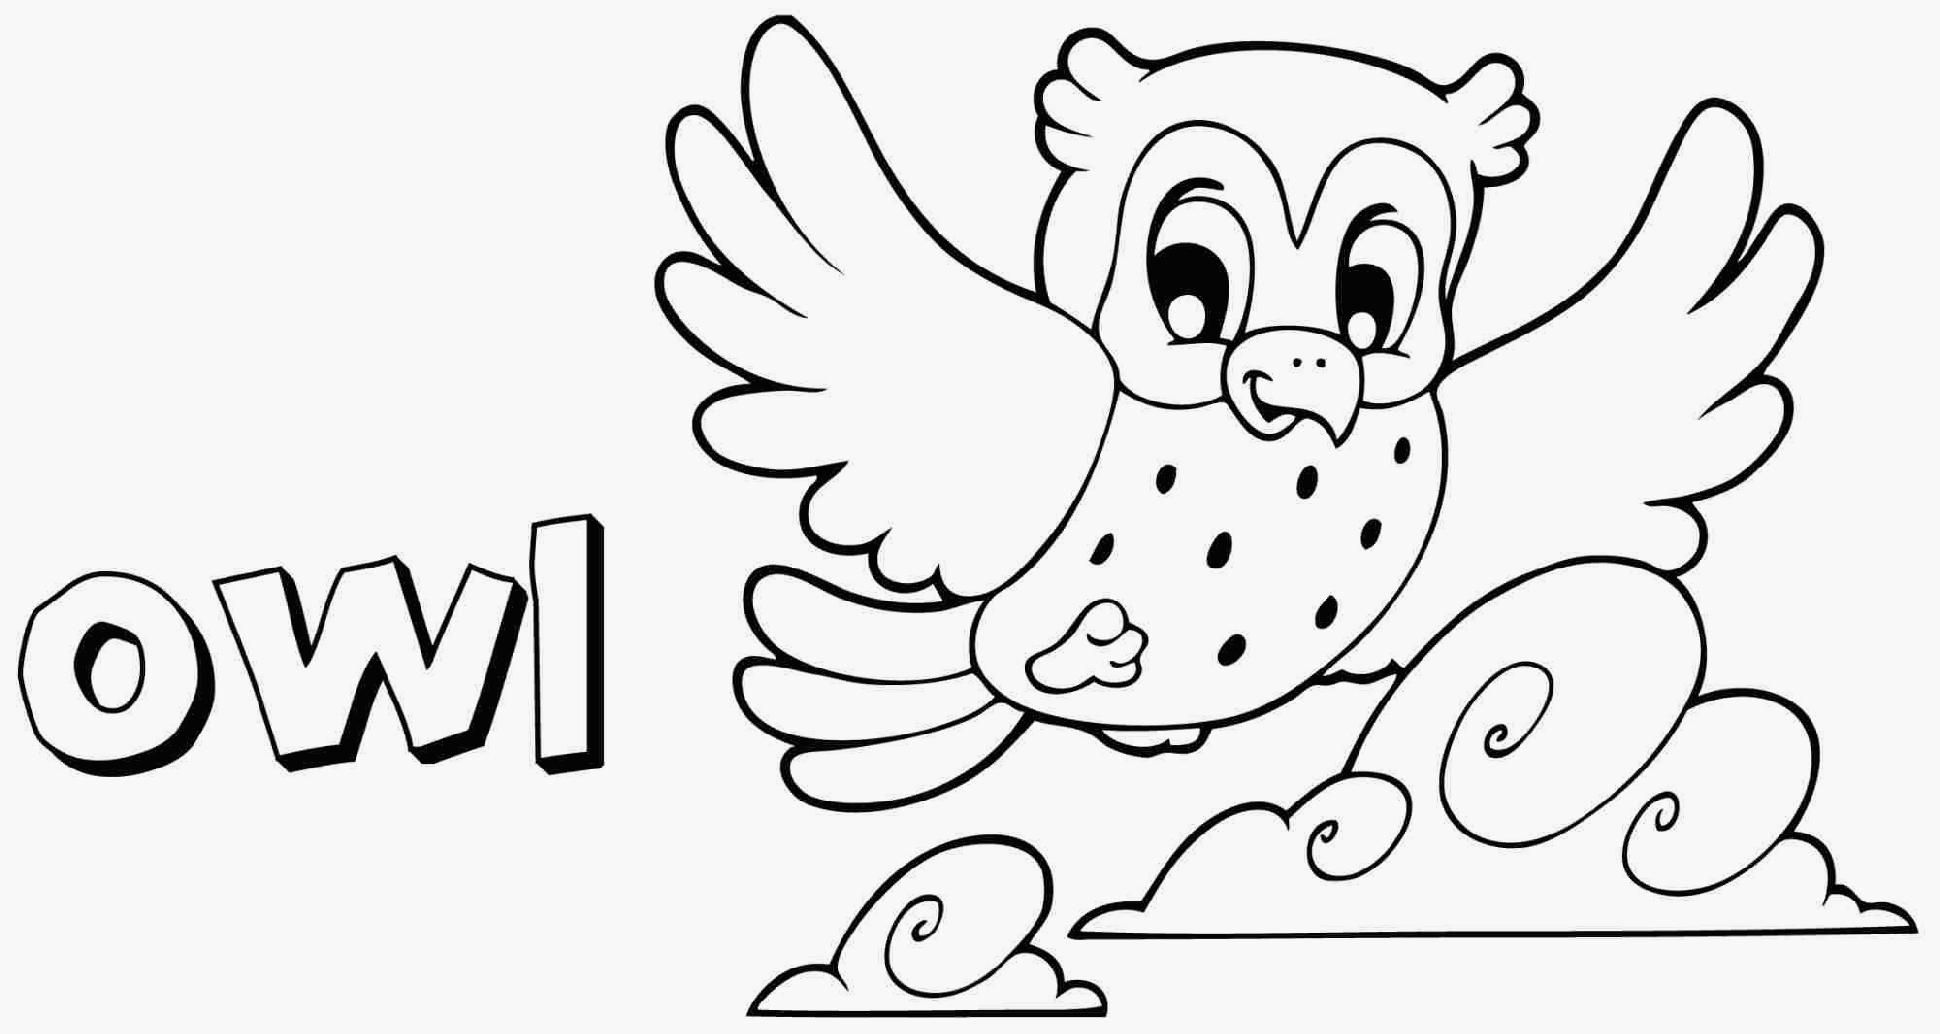 Fr free coloring pages for owls - Owl Coloring Pages Owl Free Coloring Pages Ba Owls Coloring